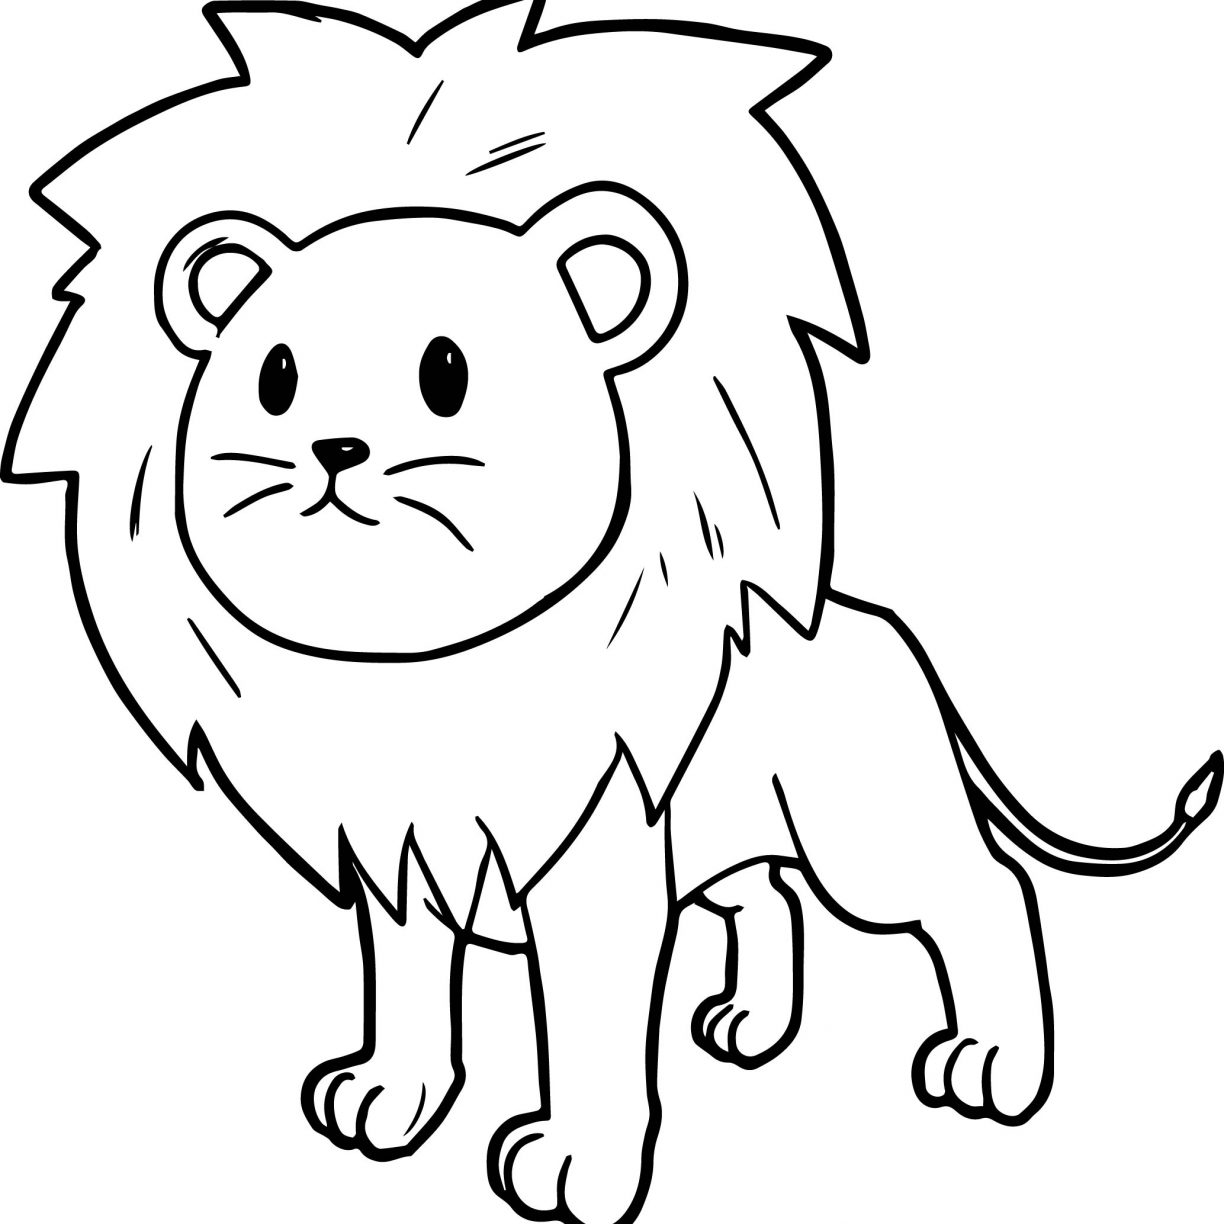 1224x1224 African Lion Coloring Page Inside Pages Of Lions Best Glum Free